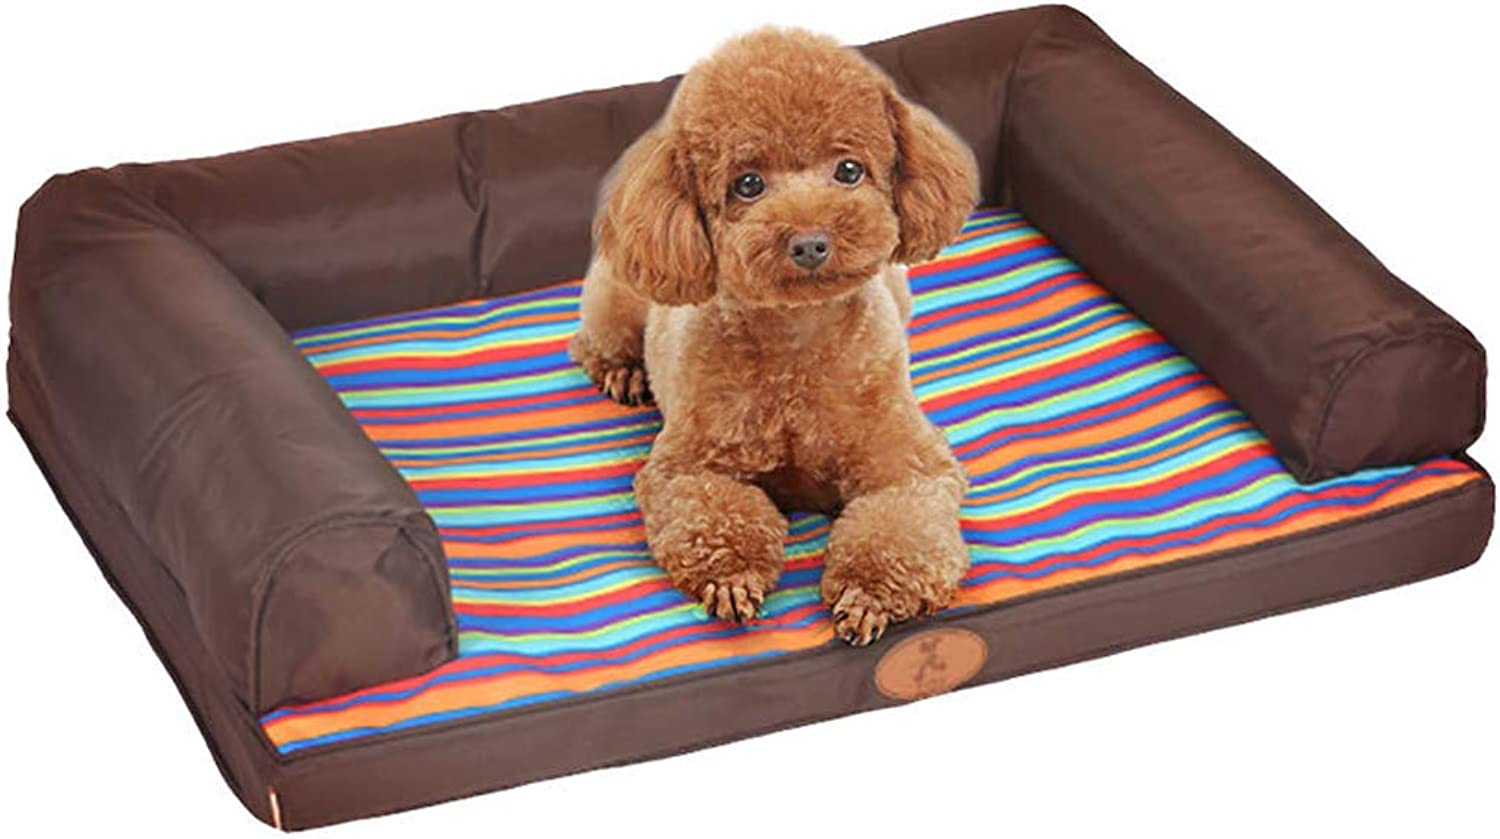 JBP Max Dog Bed Cat Nest Pet Nest Pet Bed 89  68Cm Removable And Washable Kennel Sofa Waterproof Mat Dog Pet Supplies,E